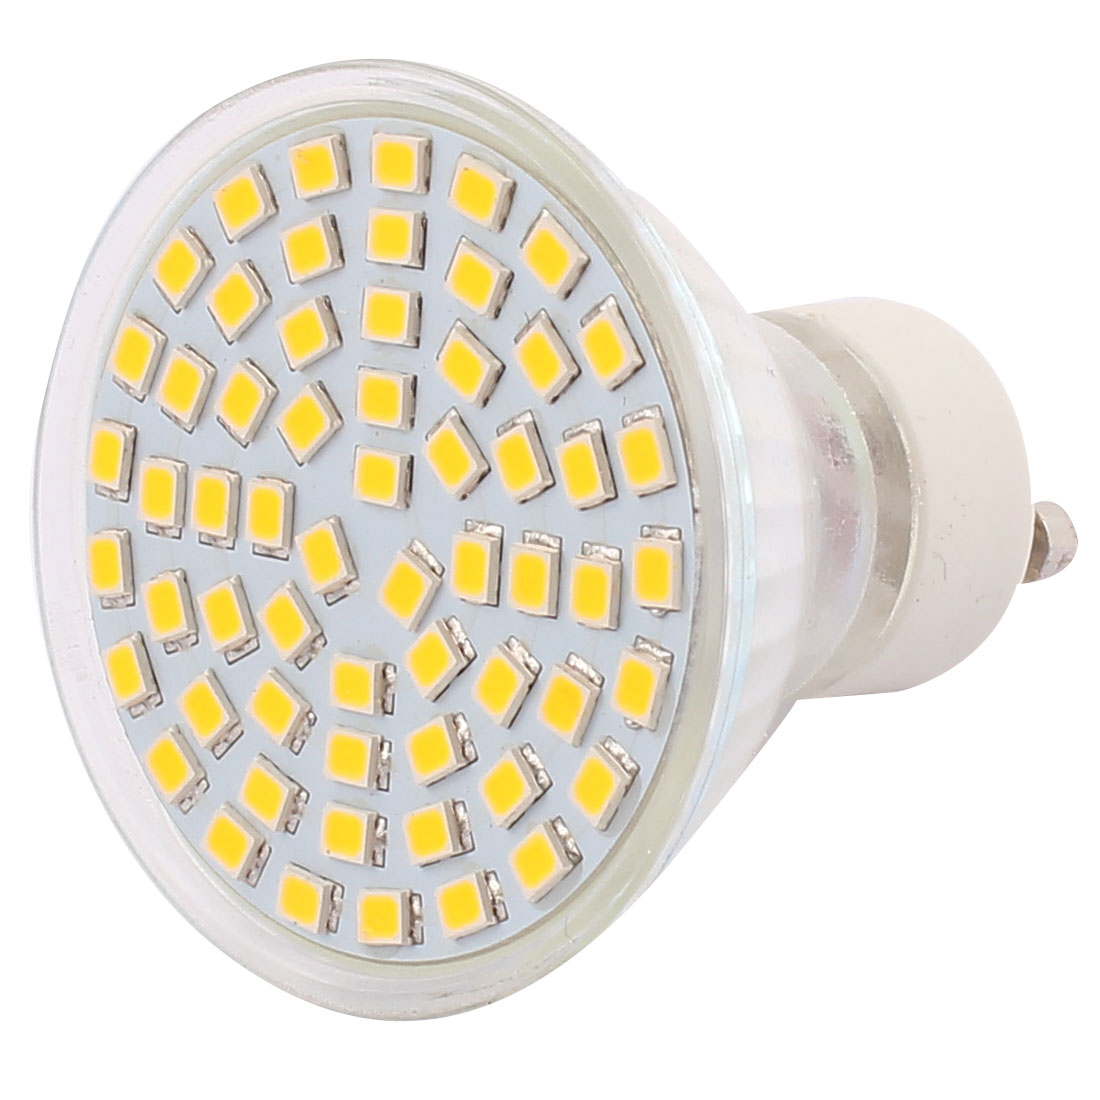 110V GU10 LED Light 6W 2835 SMD 60 LEDs Spotlight Down Lamp Bulb Lighting Warm White